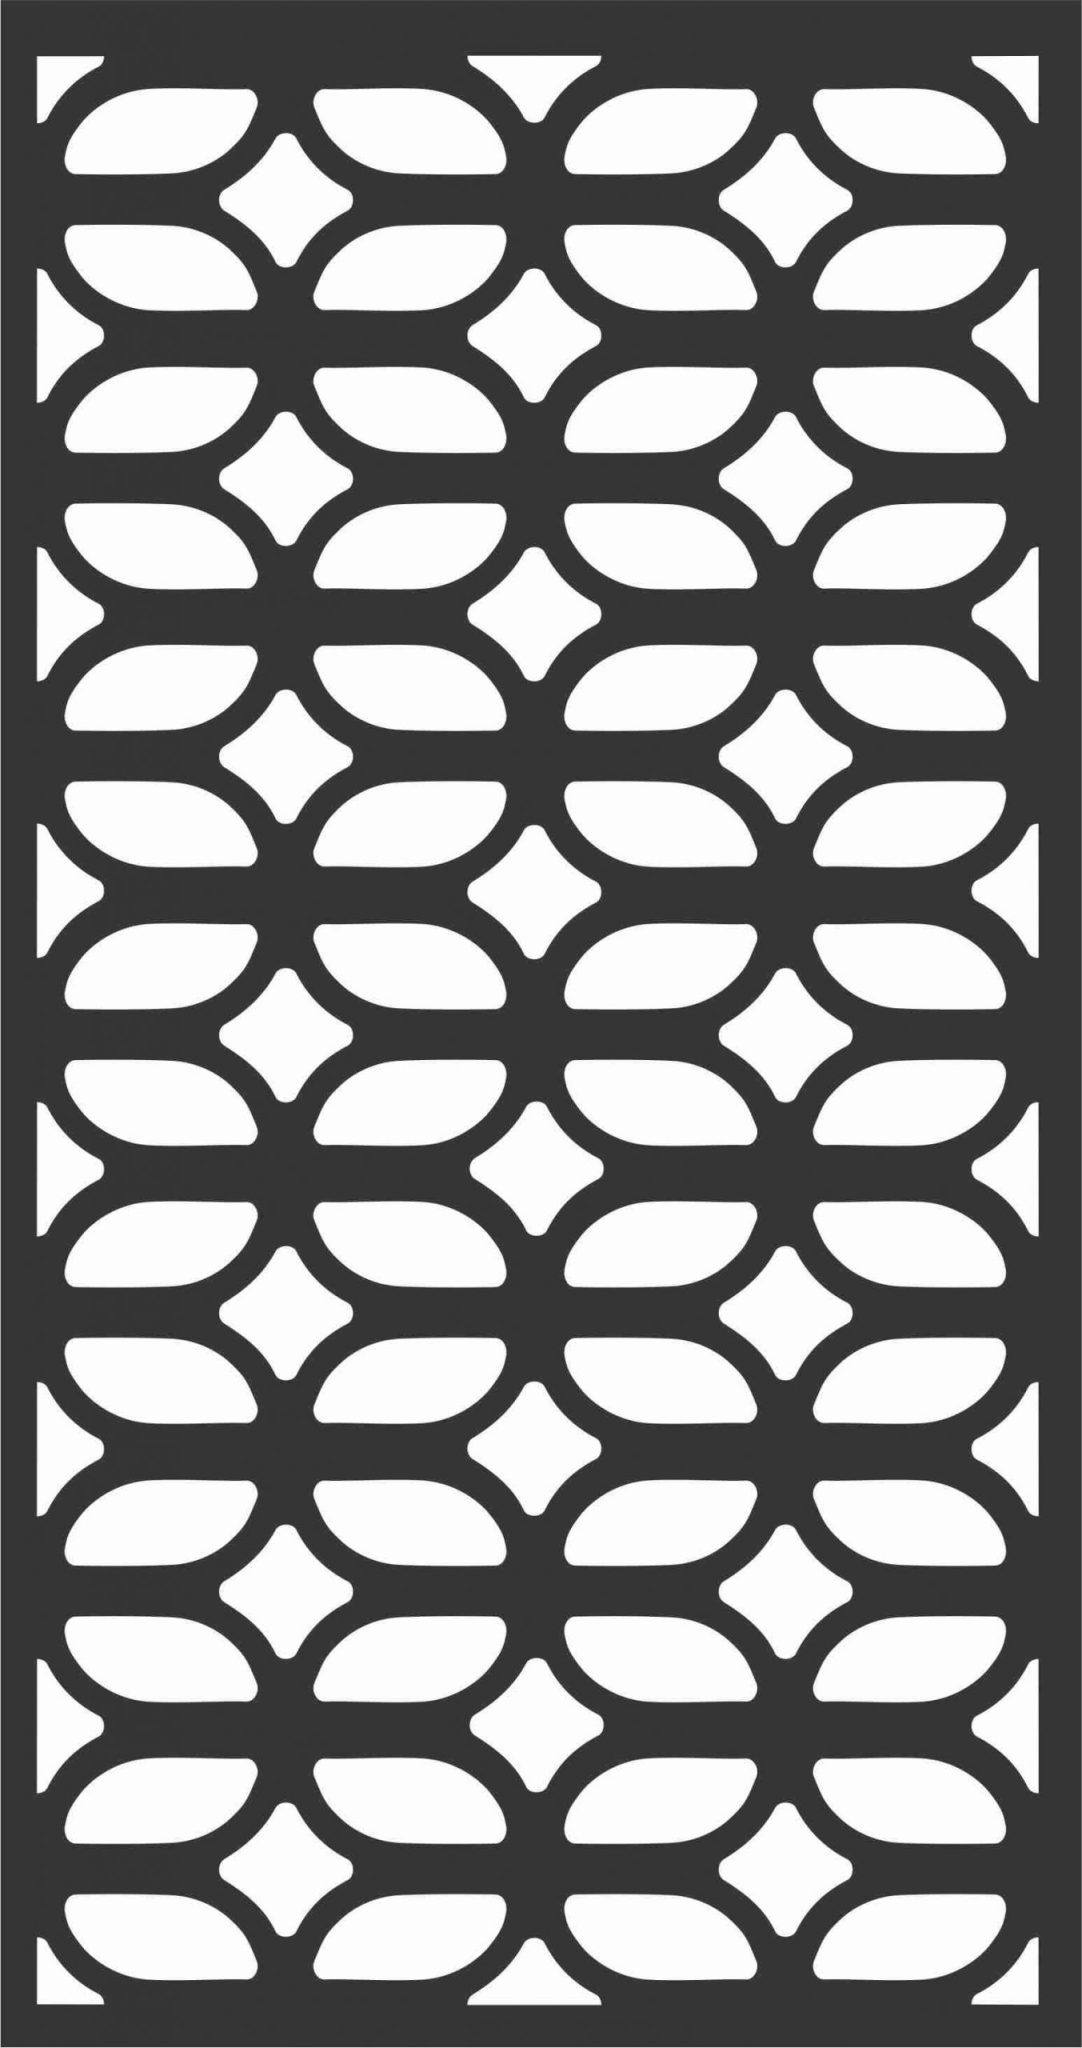 Floral Screen Patterns Design 82 Free DXF File